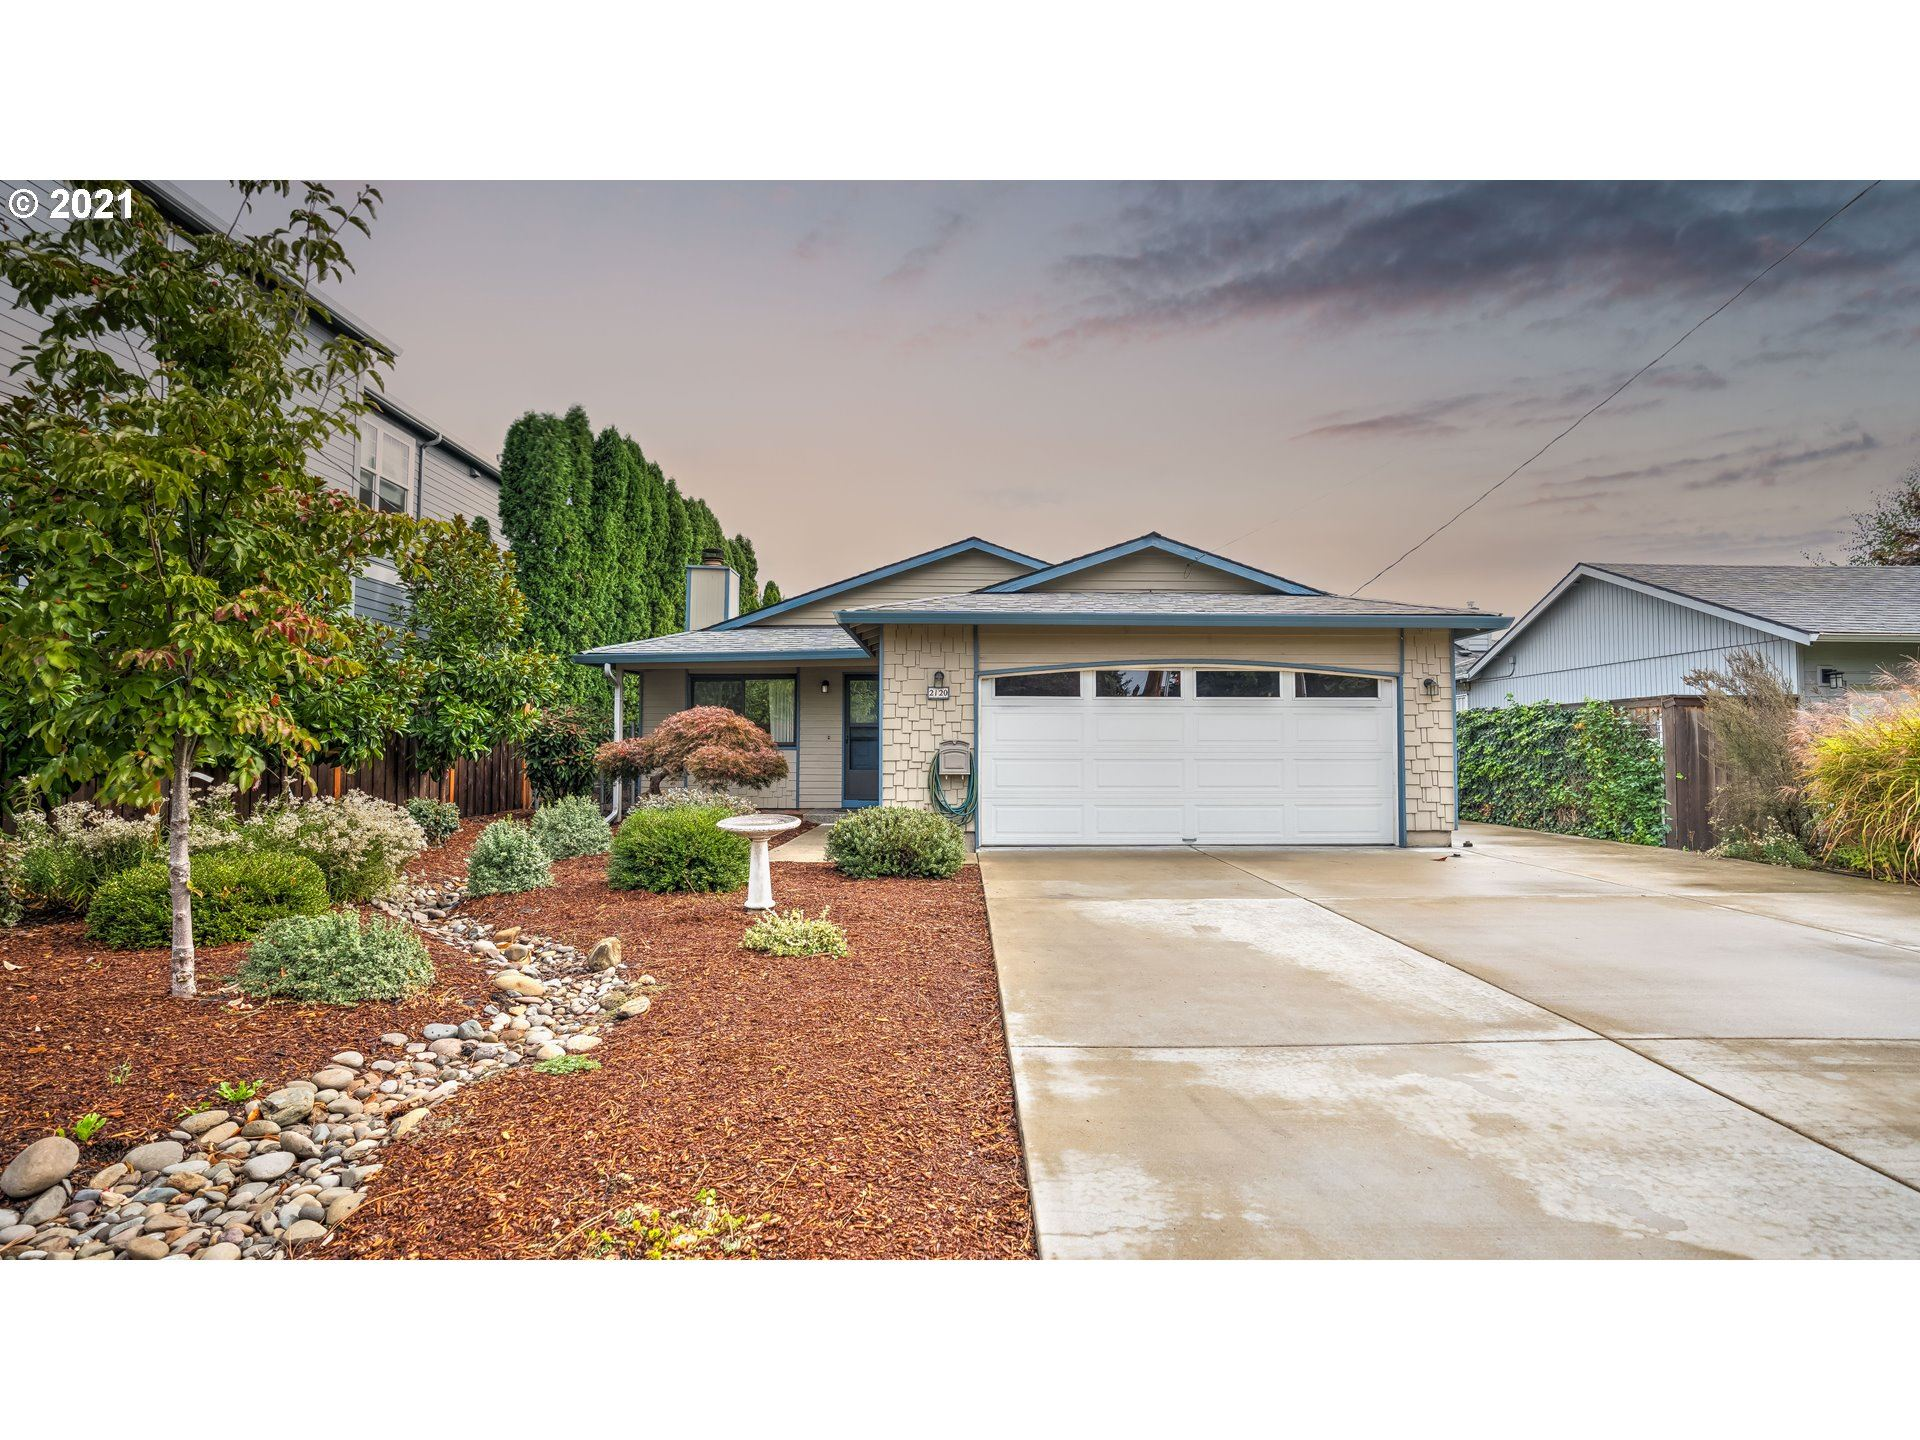 2120 SE 60TH AVE, Portland, OR 97215 - MLS#: 21448751